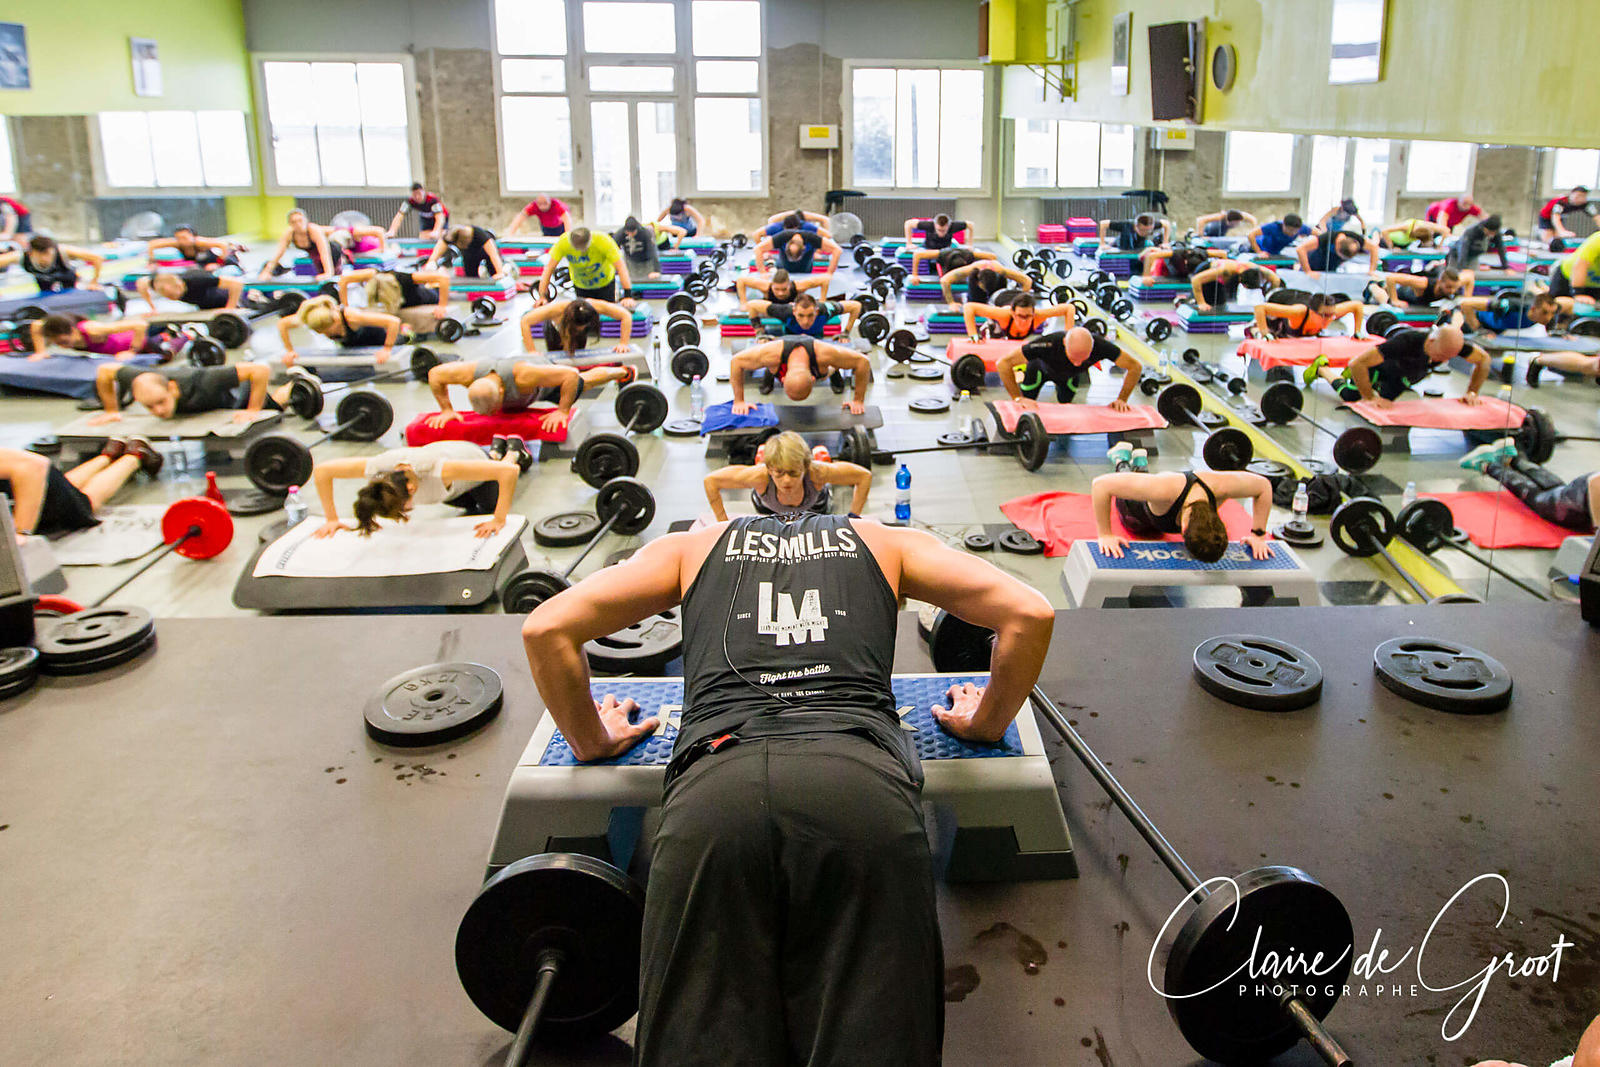 Fitness Class in a gym